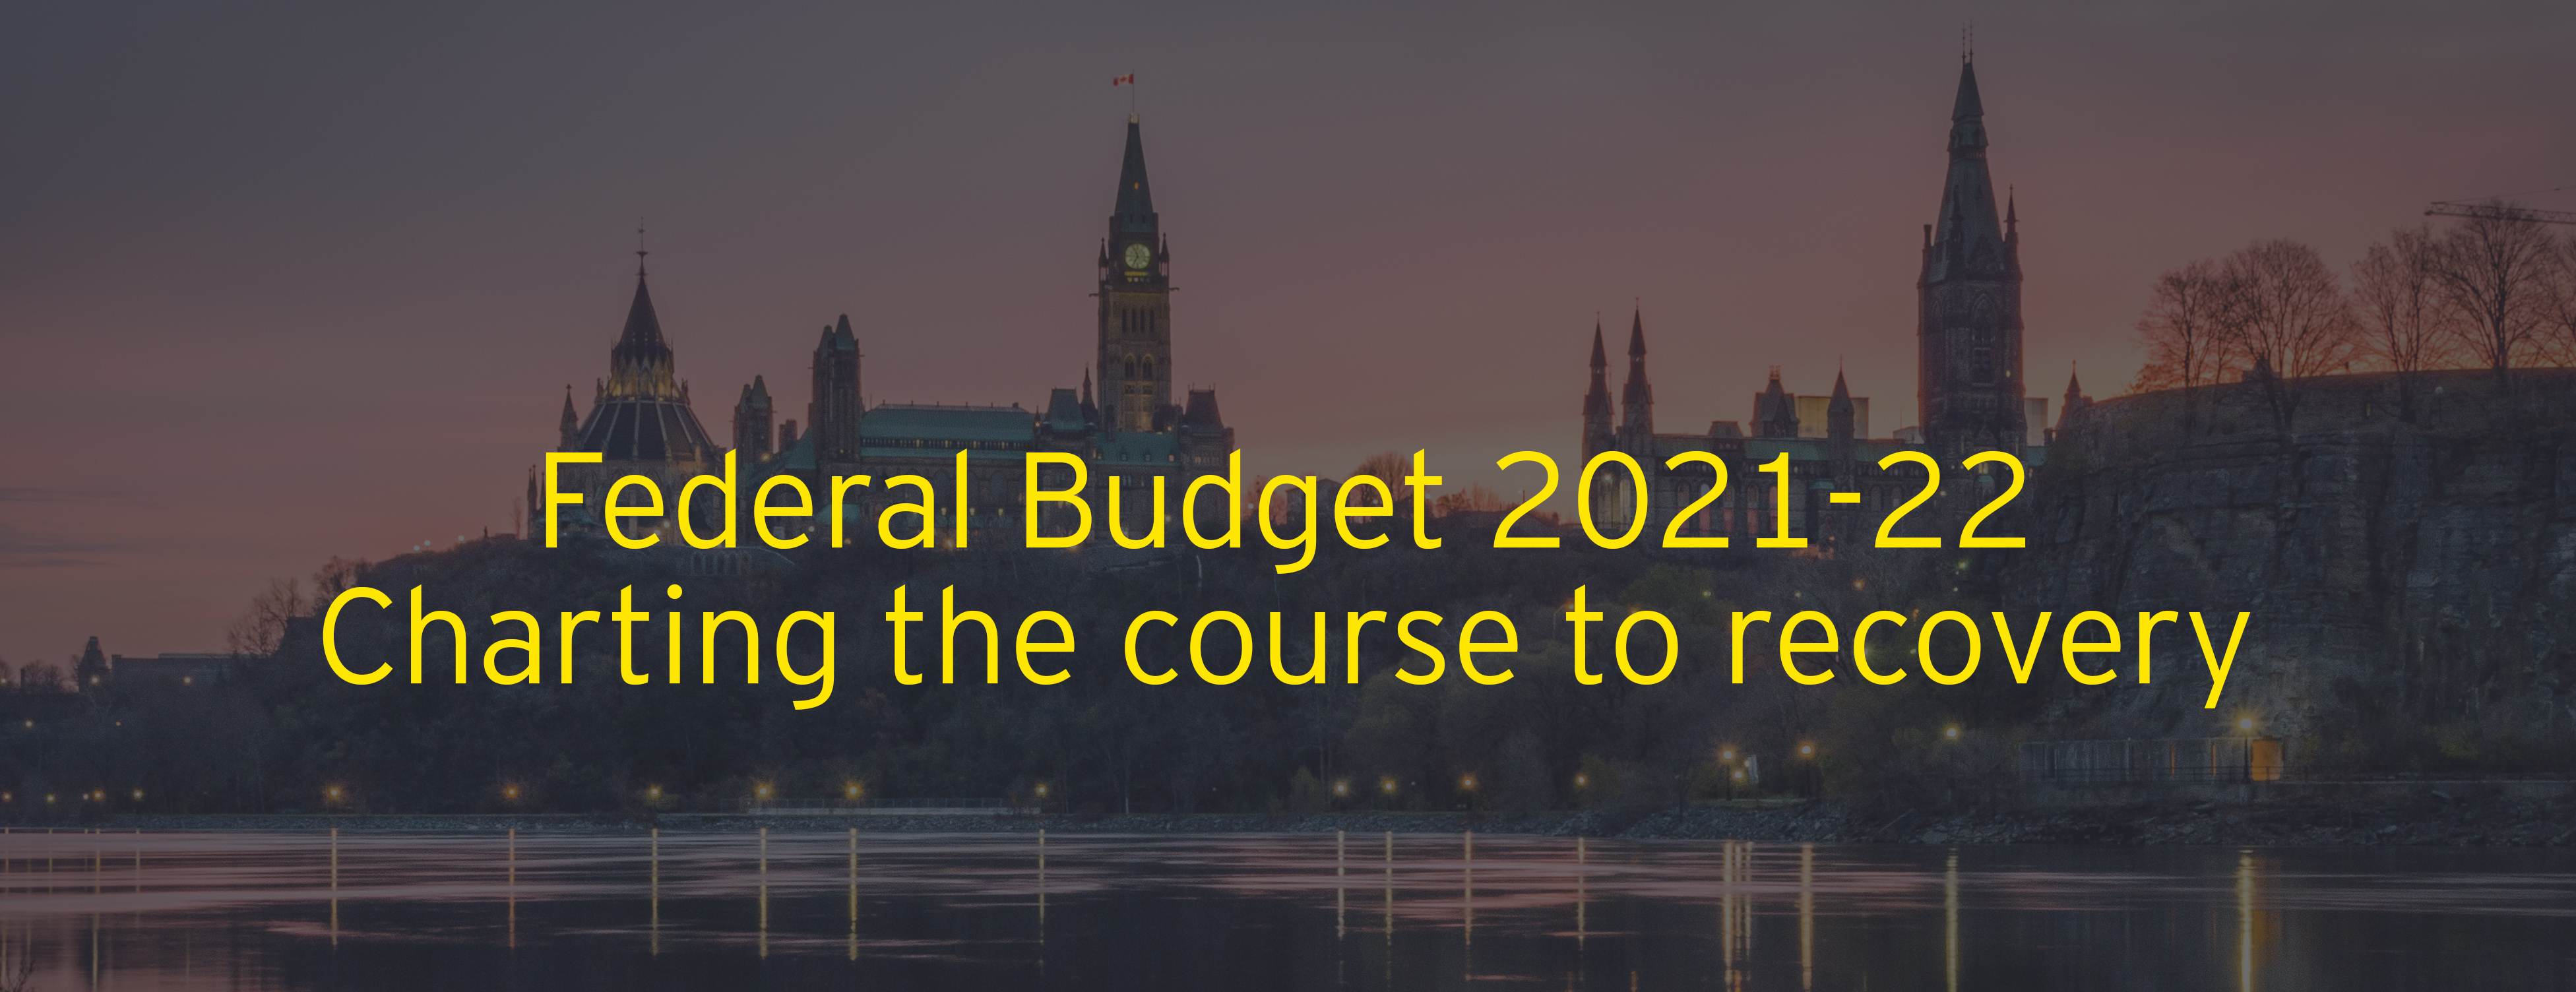 Federal Budget 2021 insights and analysis